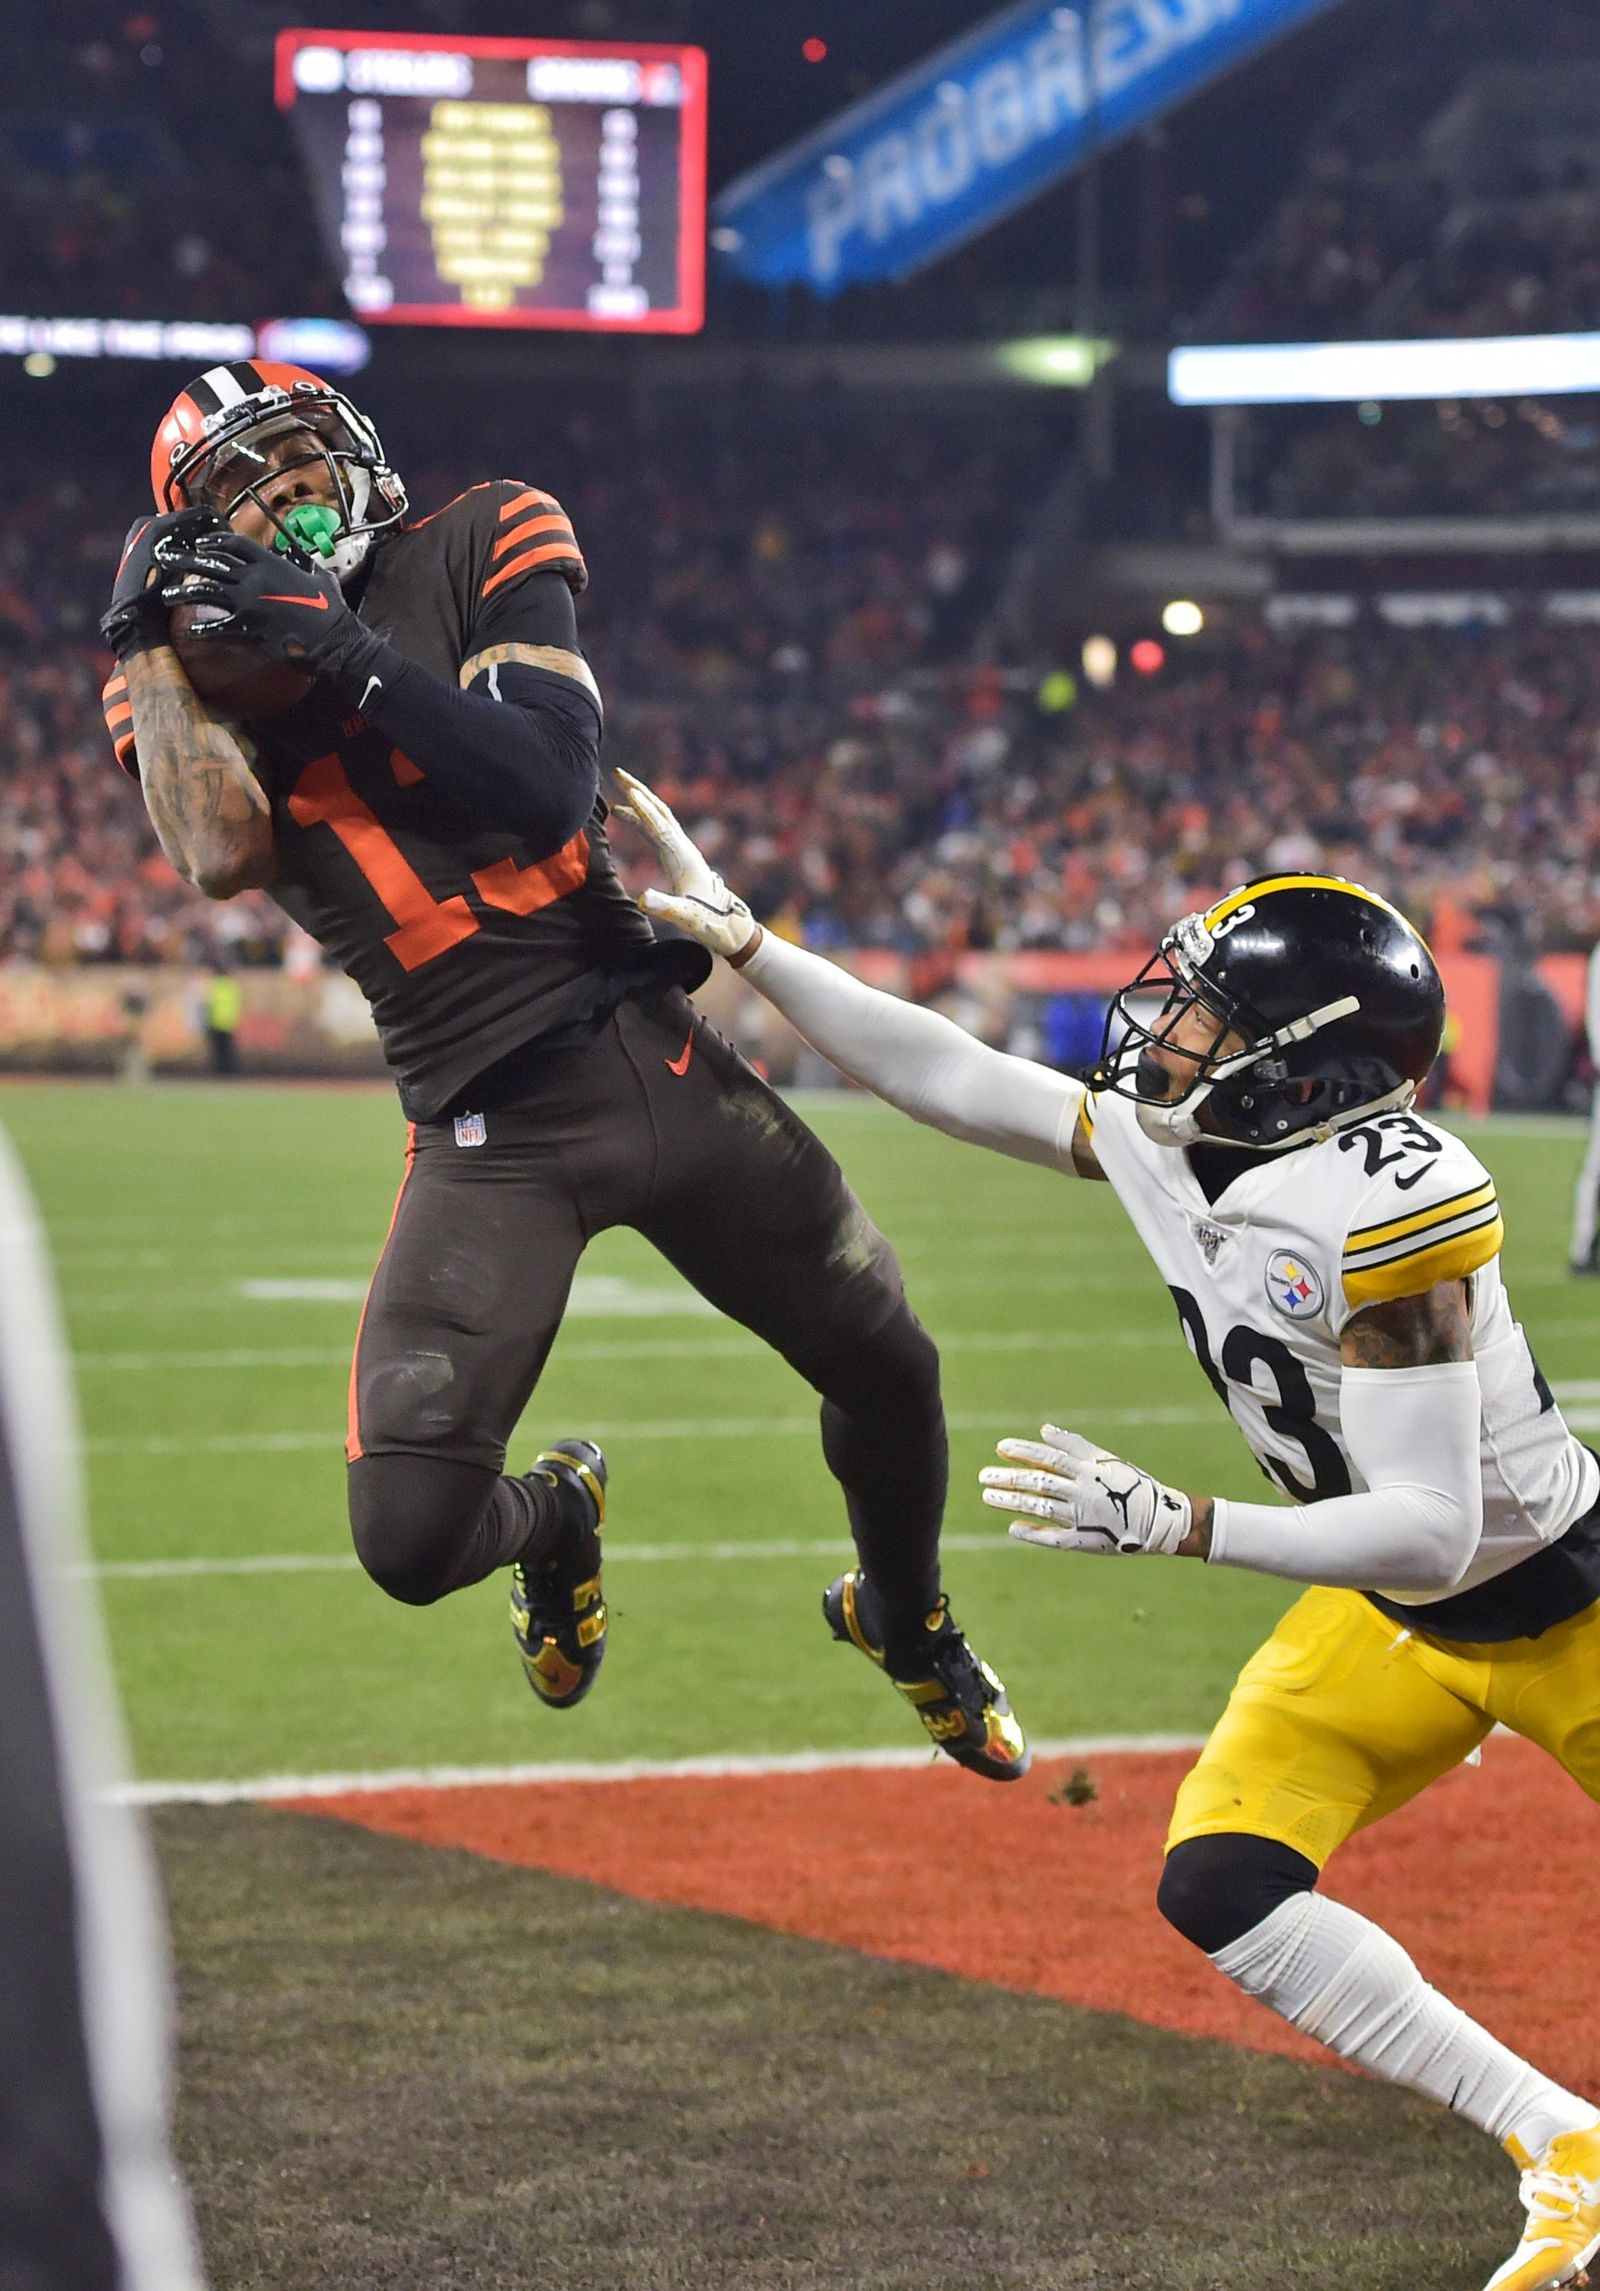 Cleveland Browns wide receiver Odell Beckham Jr., left, can't hold on to the ball under pressure from Pittsburgh Steelers cornerback Joe Haden during the second half of an NFL football game Thursday, Nov. 14, 2019, in Cleveland. (AP Photo/David Richard)